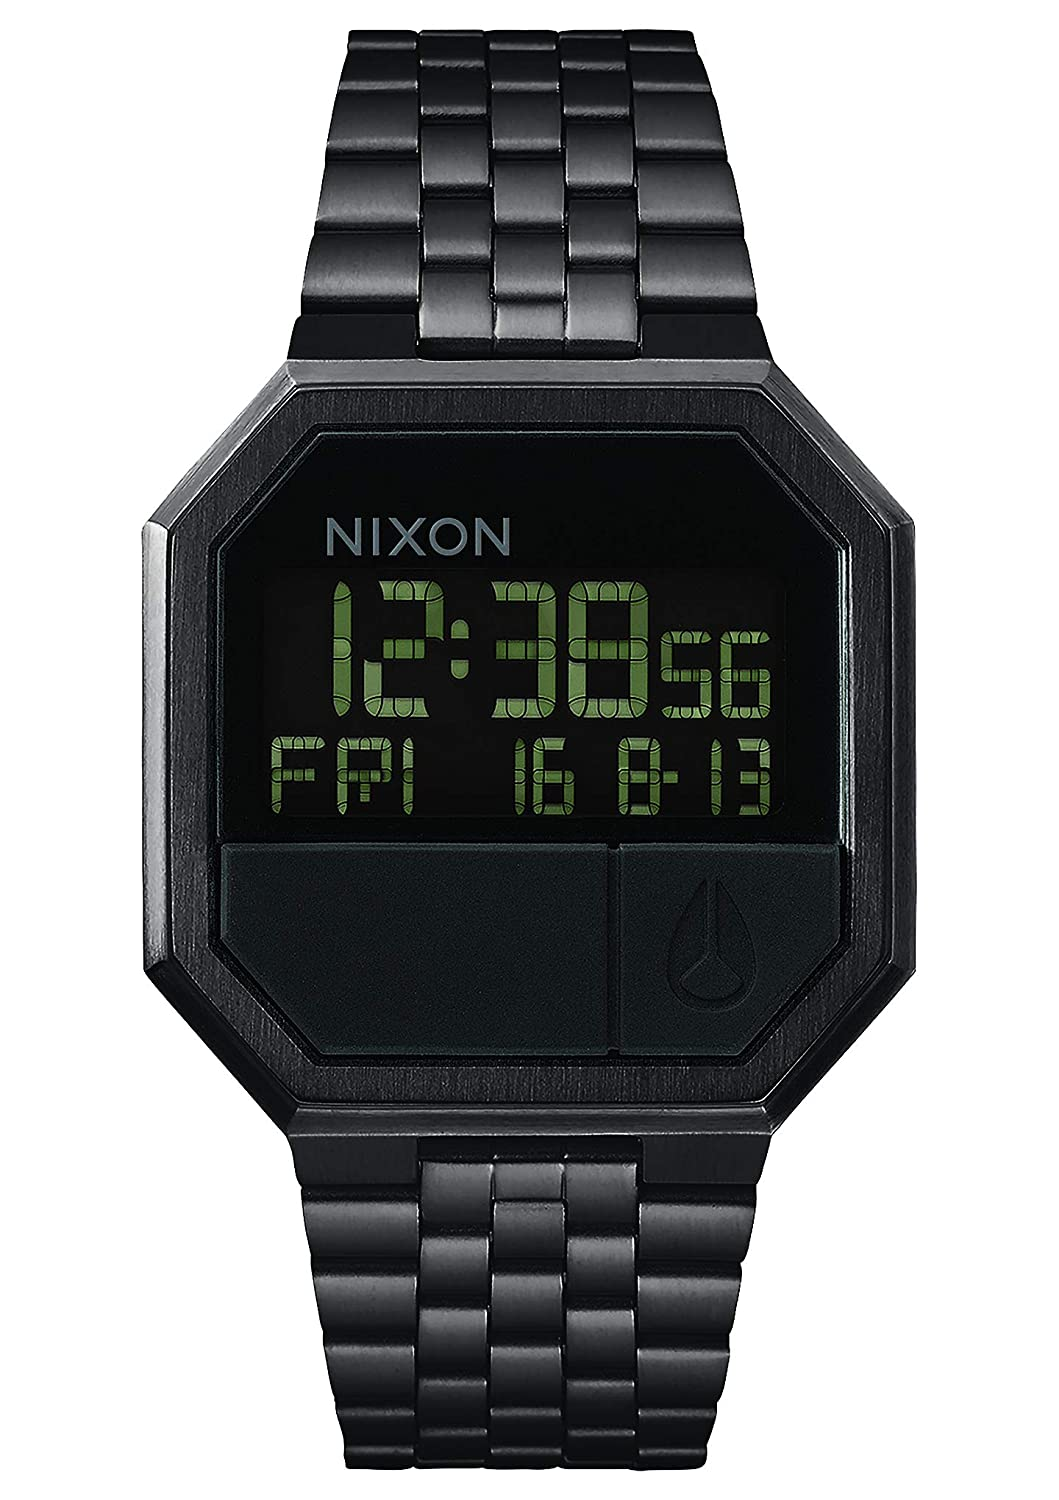 NIXON Re-Run -Spring 2017- All Black